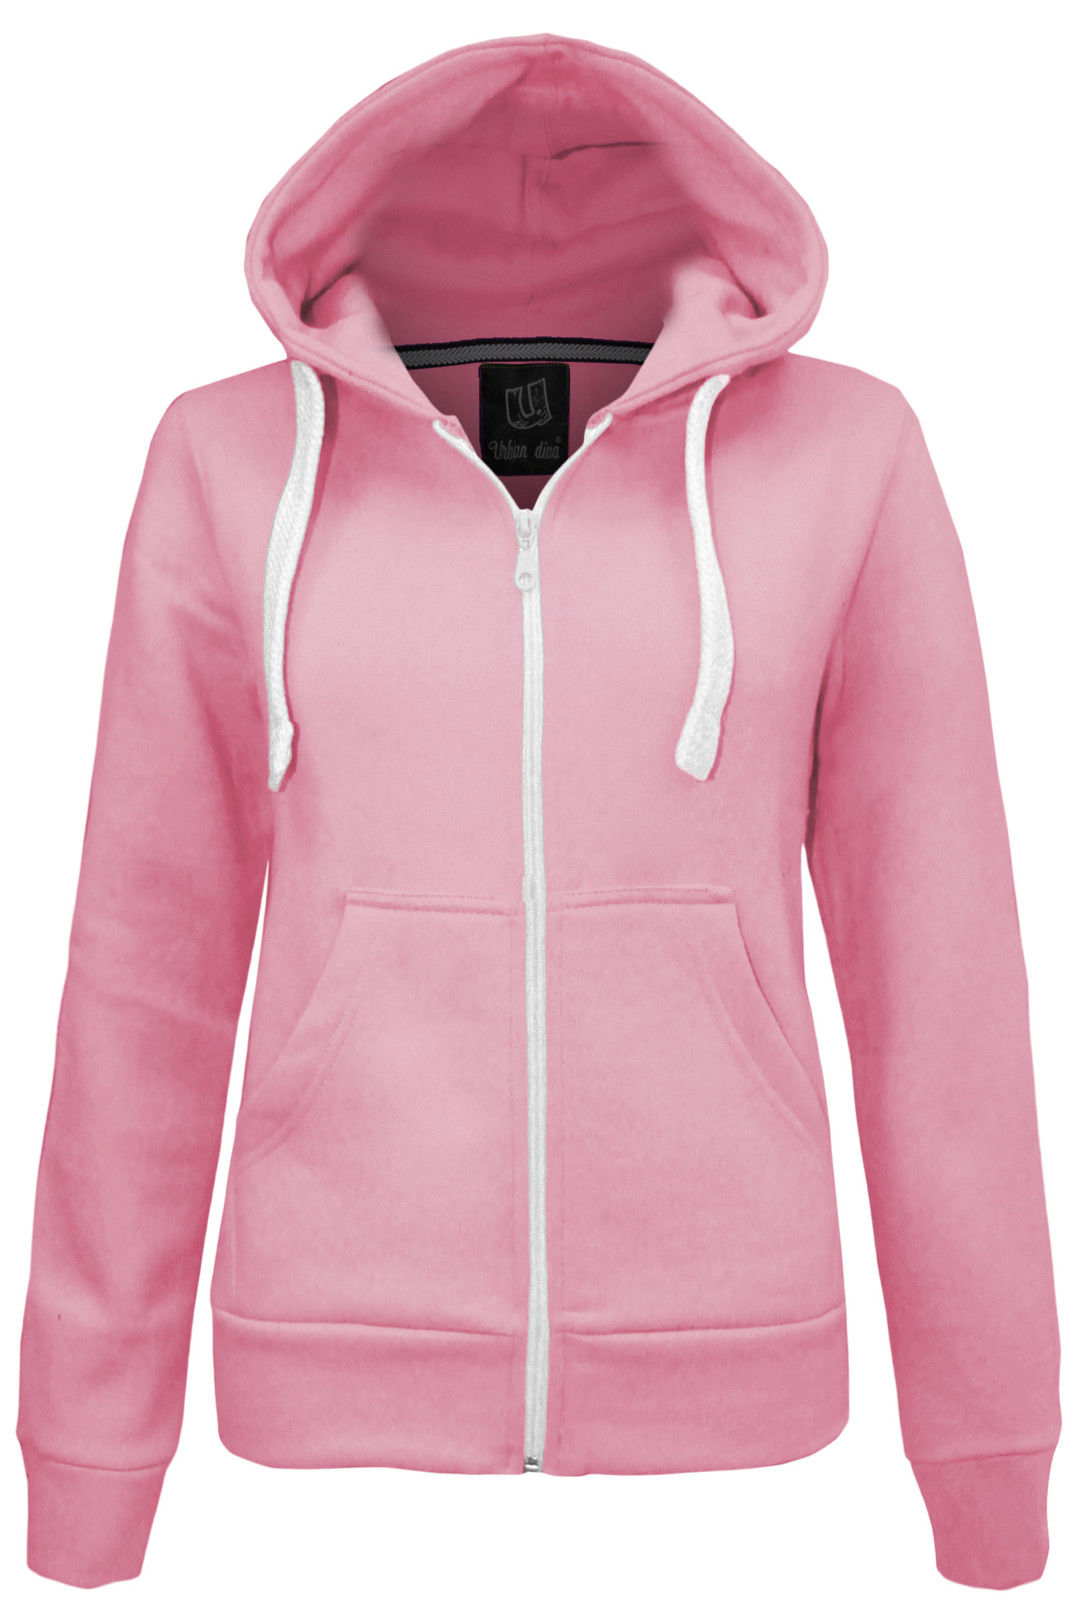 Shop our high quality sweatshirts for women at American Giant. Our American made women's sweatshirts are made with custom heavyweight fleece.